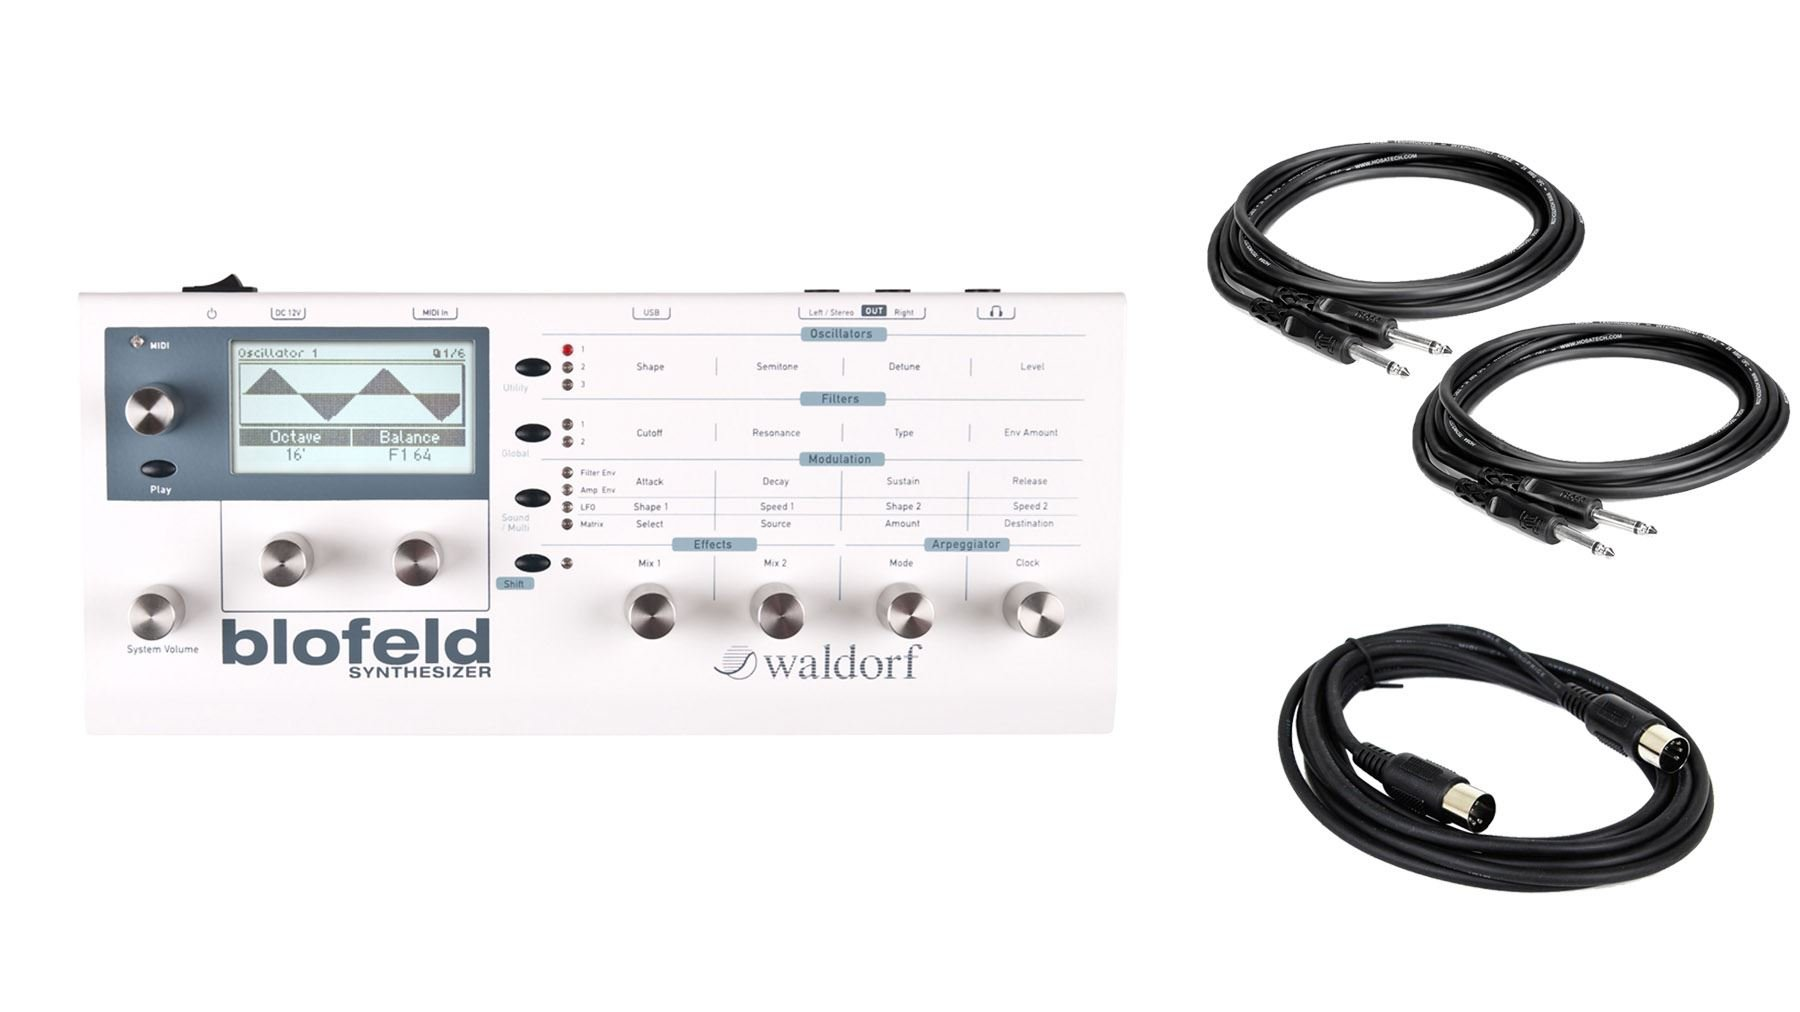 Waldorf White Blofeld Synthesizer Desktop Module Bundle with 2 Instrument & MIDI Cable (4 Items)